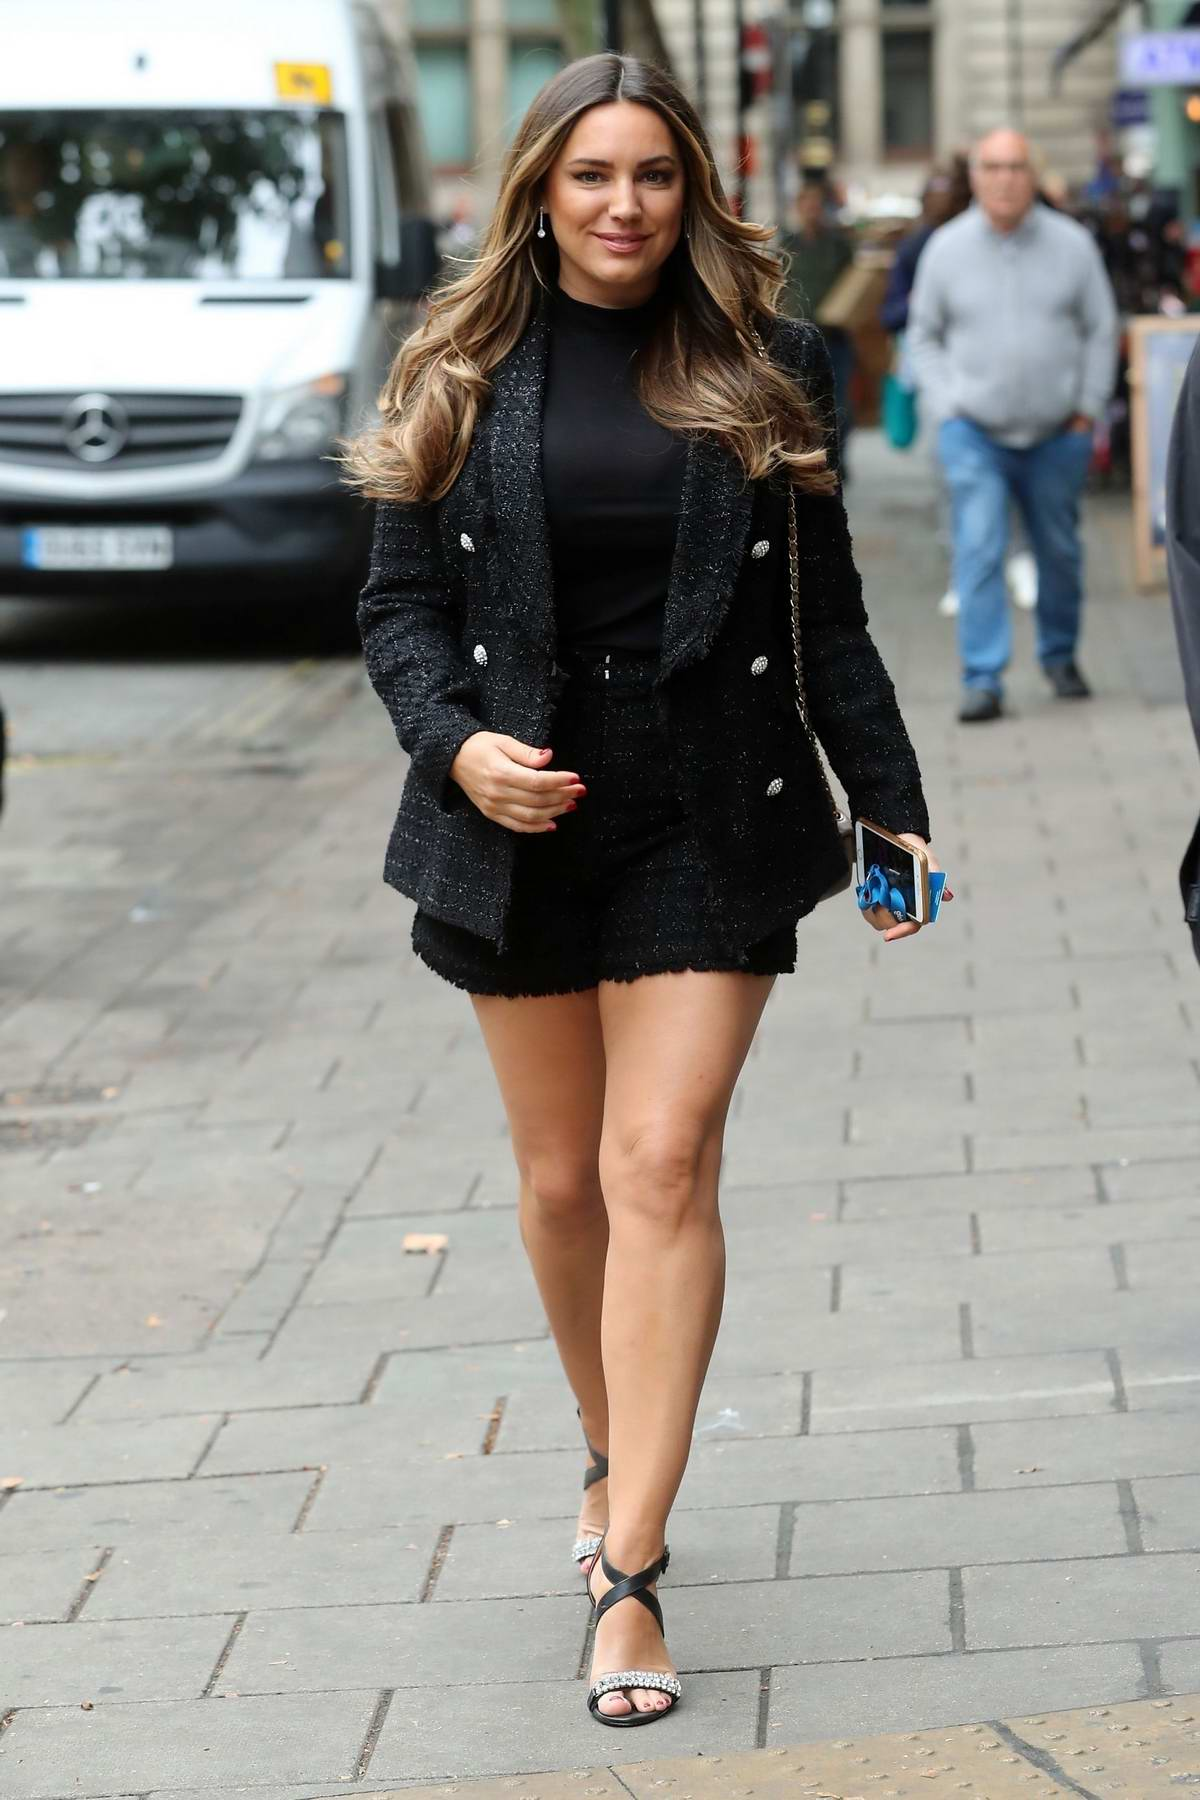 Kelly Brook looks stunning in a black tweed blazer with matching shorts as she arrives at Global Radio in London, UK